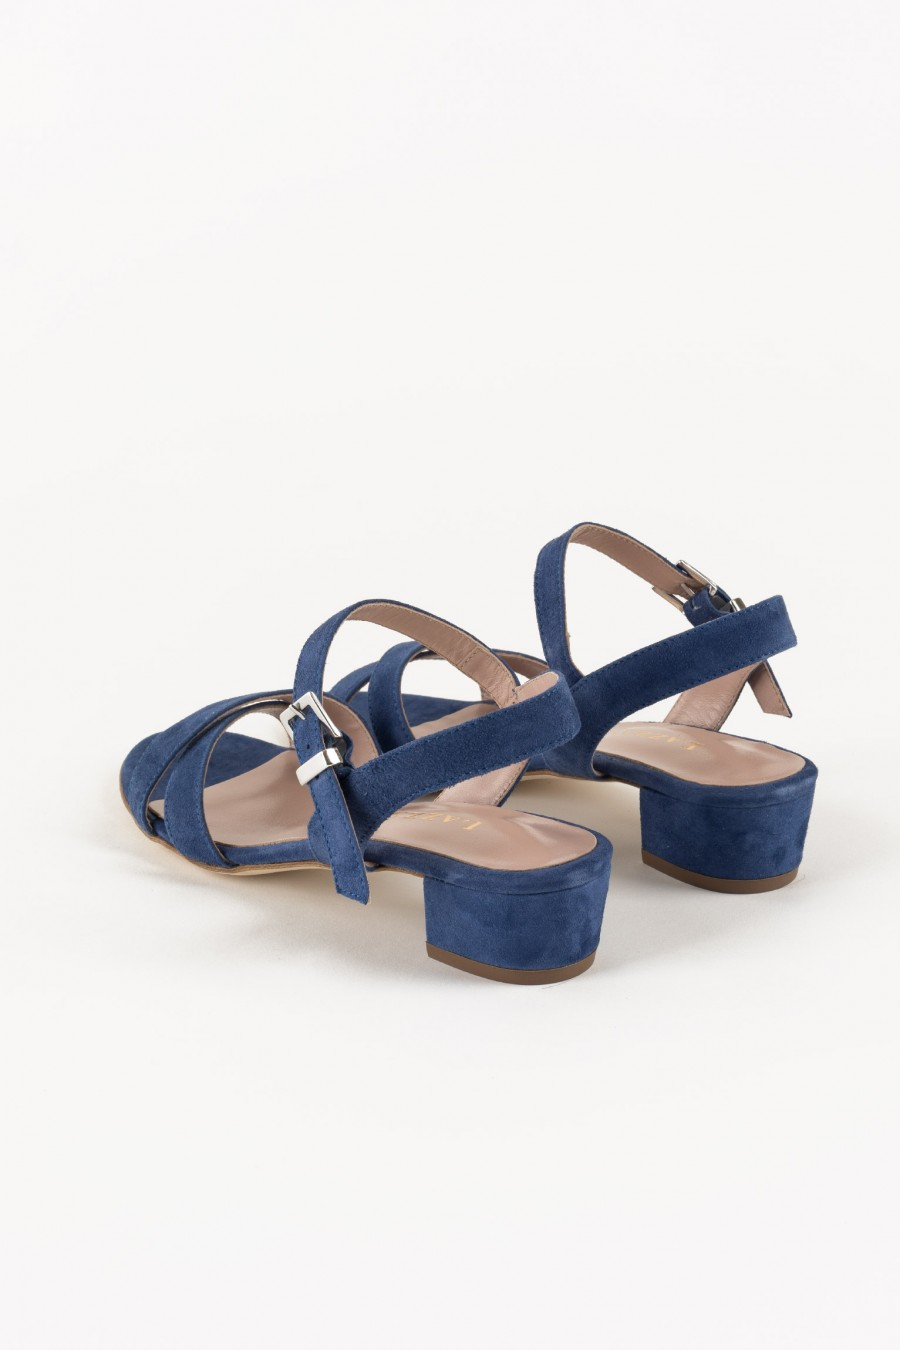 Denim sandals with lists